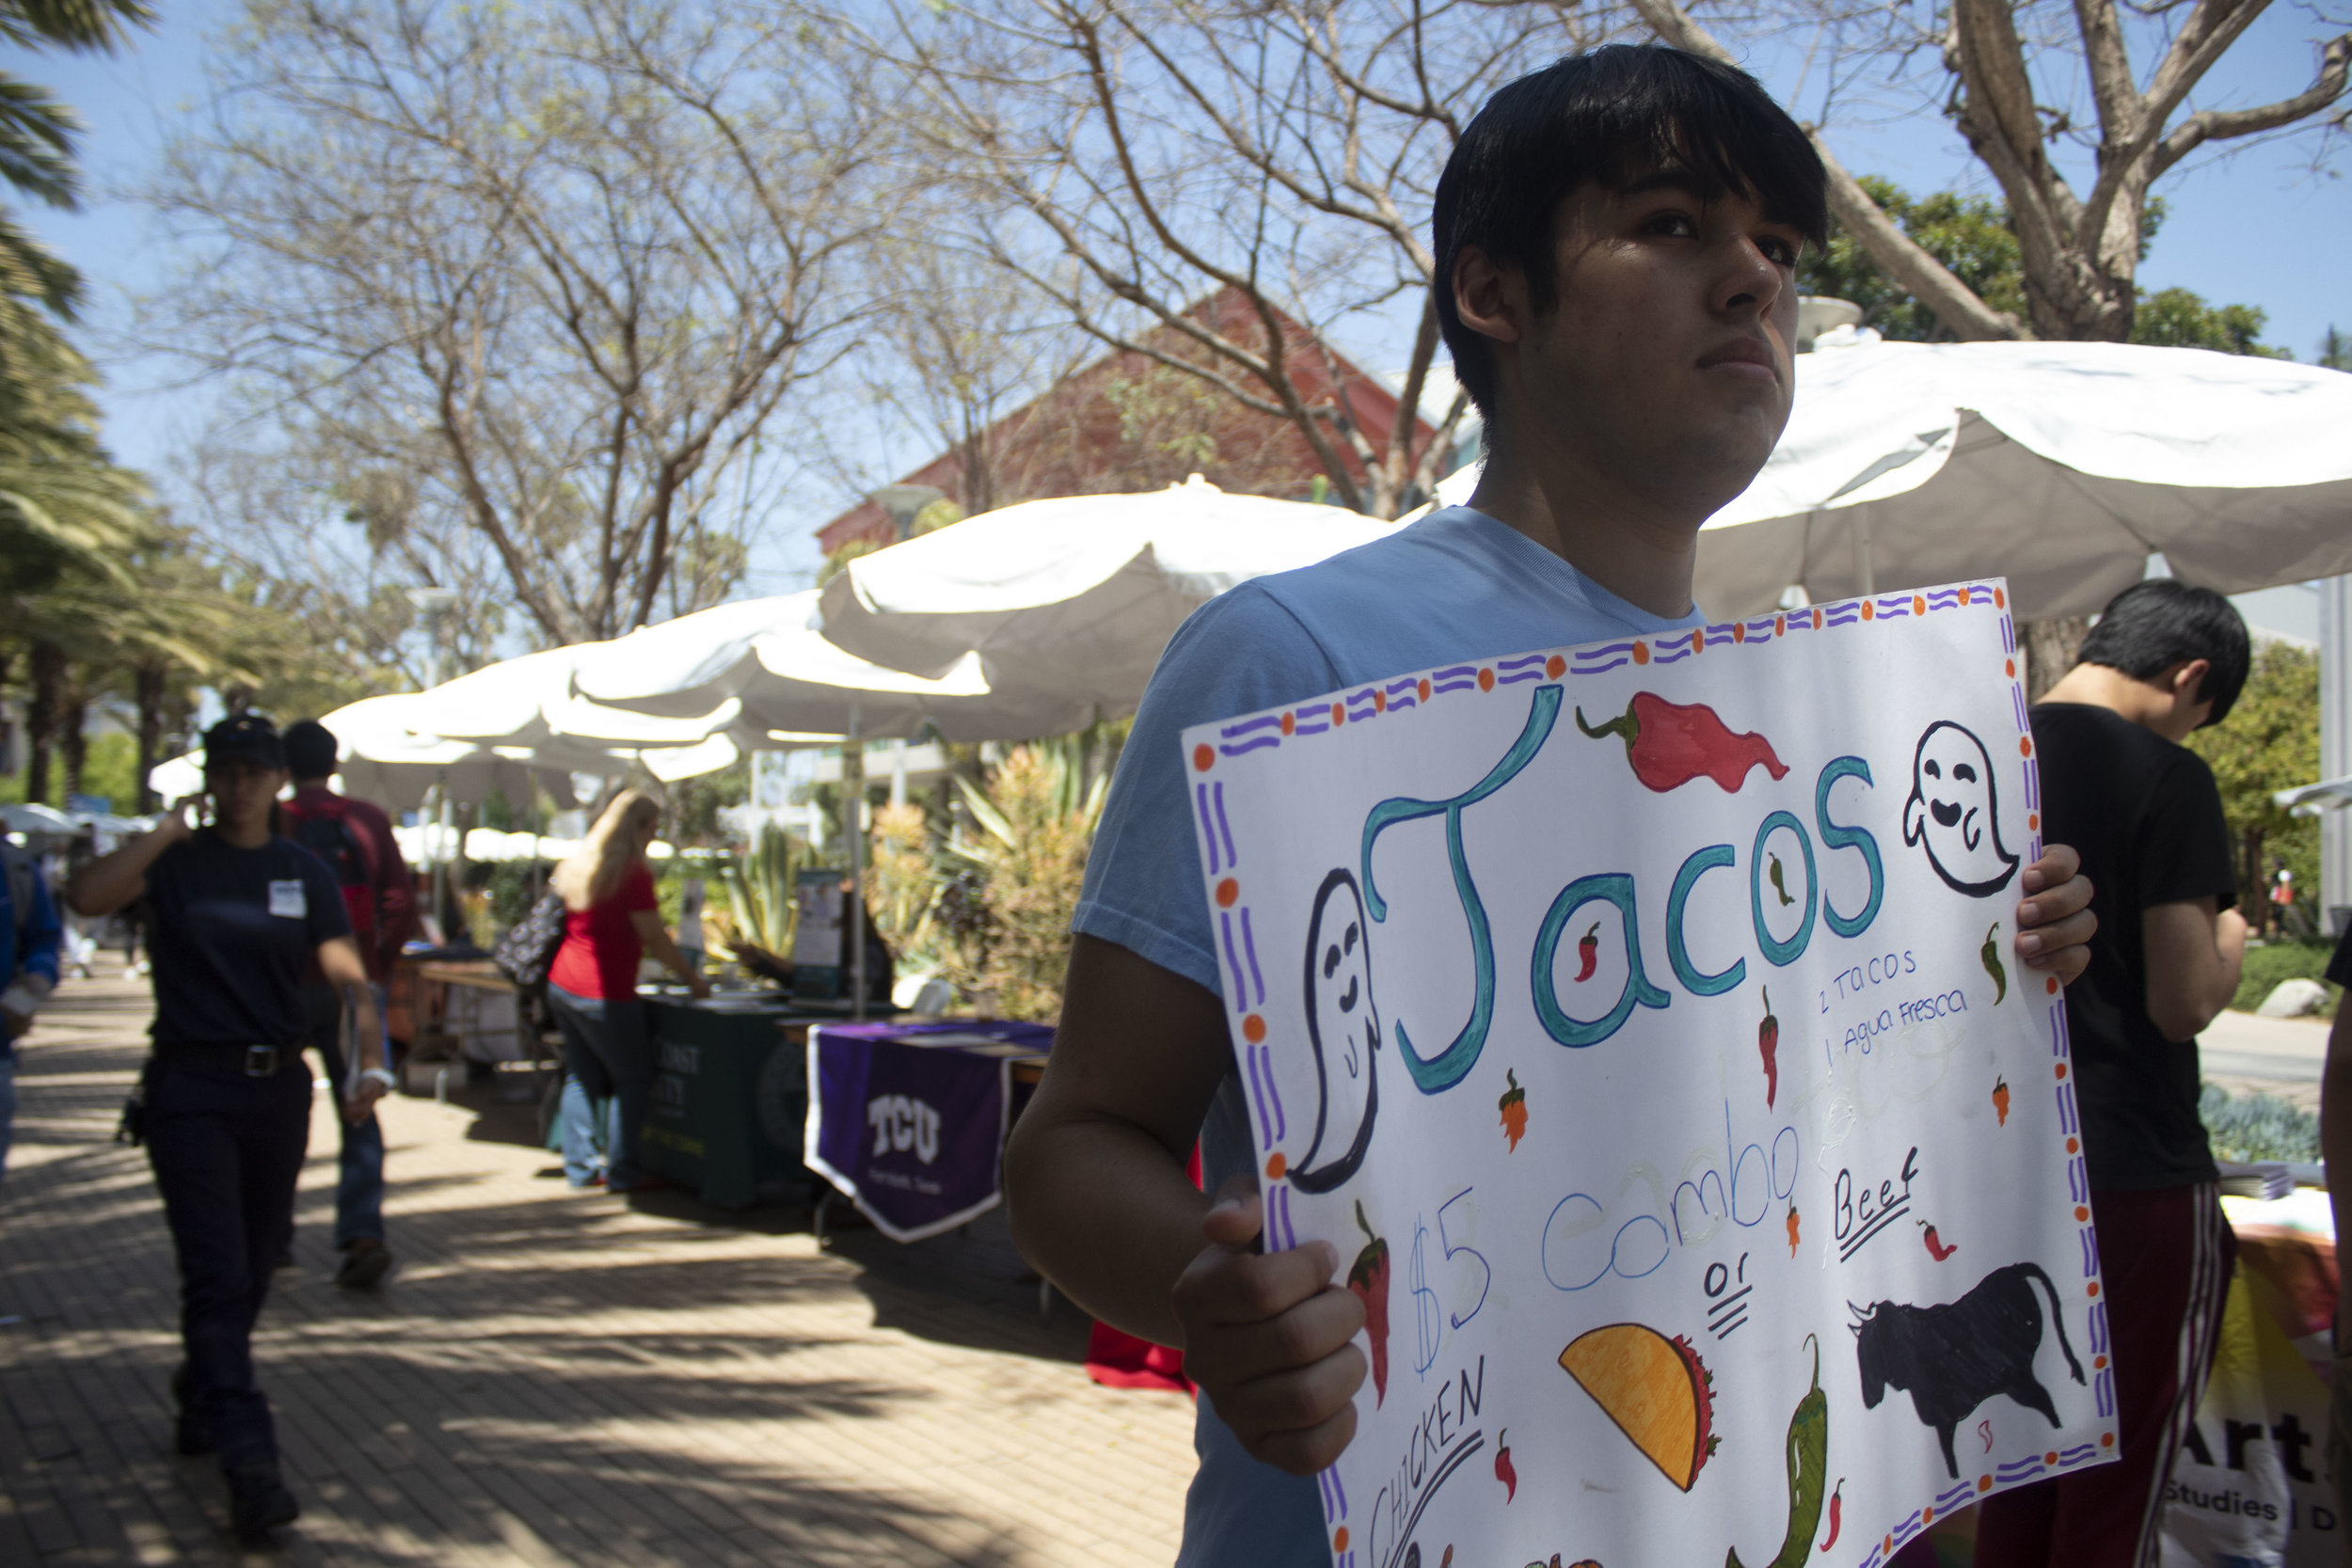 A student advertises Tacos on campus for his booth during the Santa Monica College (SMC) College Fair. April 23, 2019. (Pablo Eden Garcia/ The Corsair)